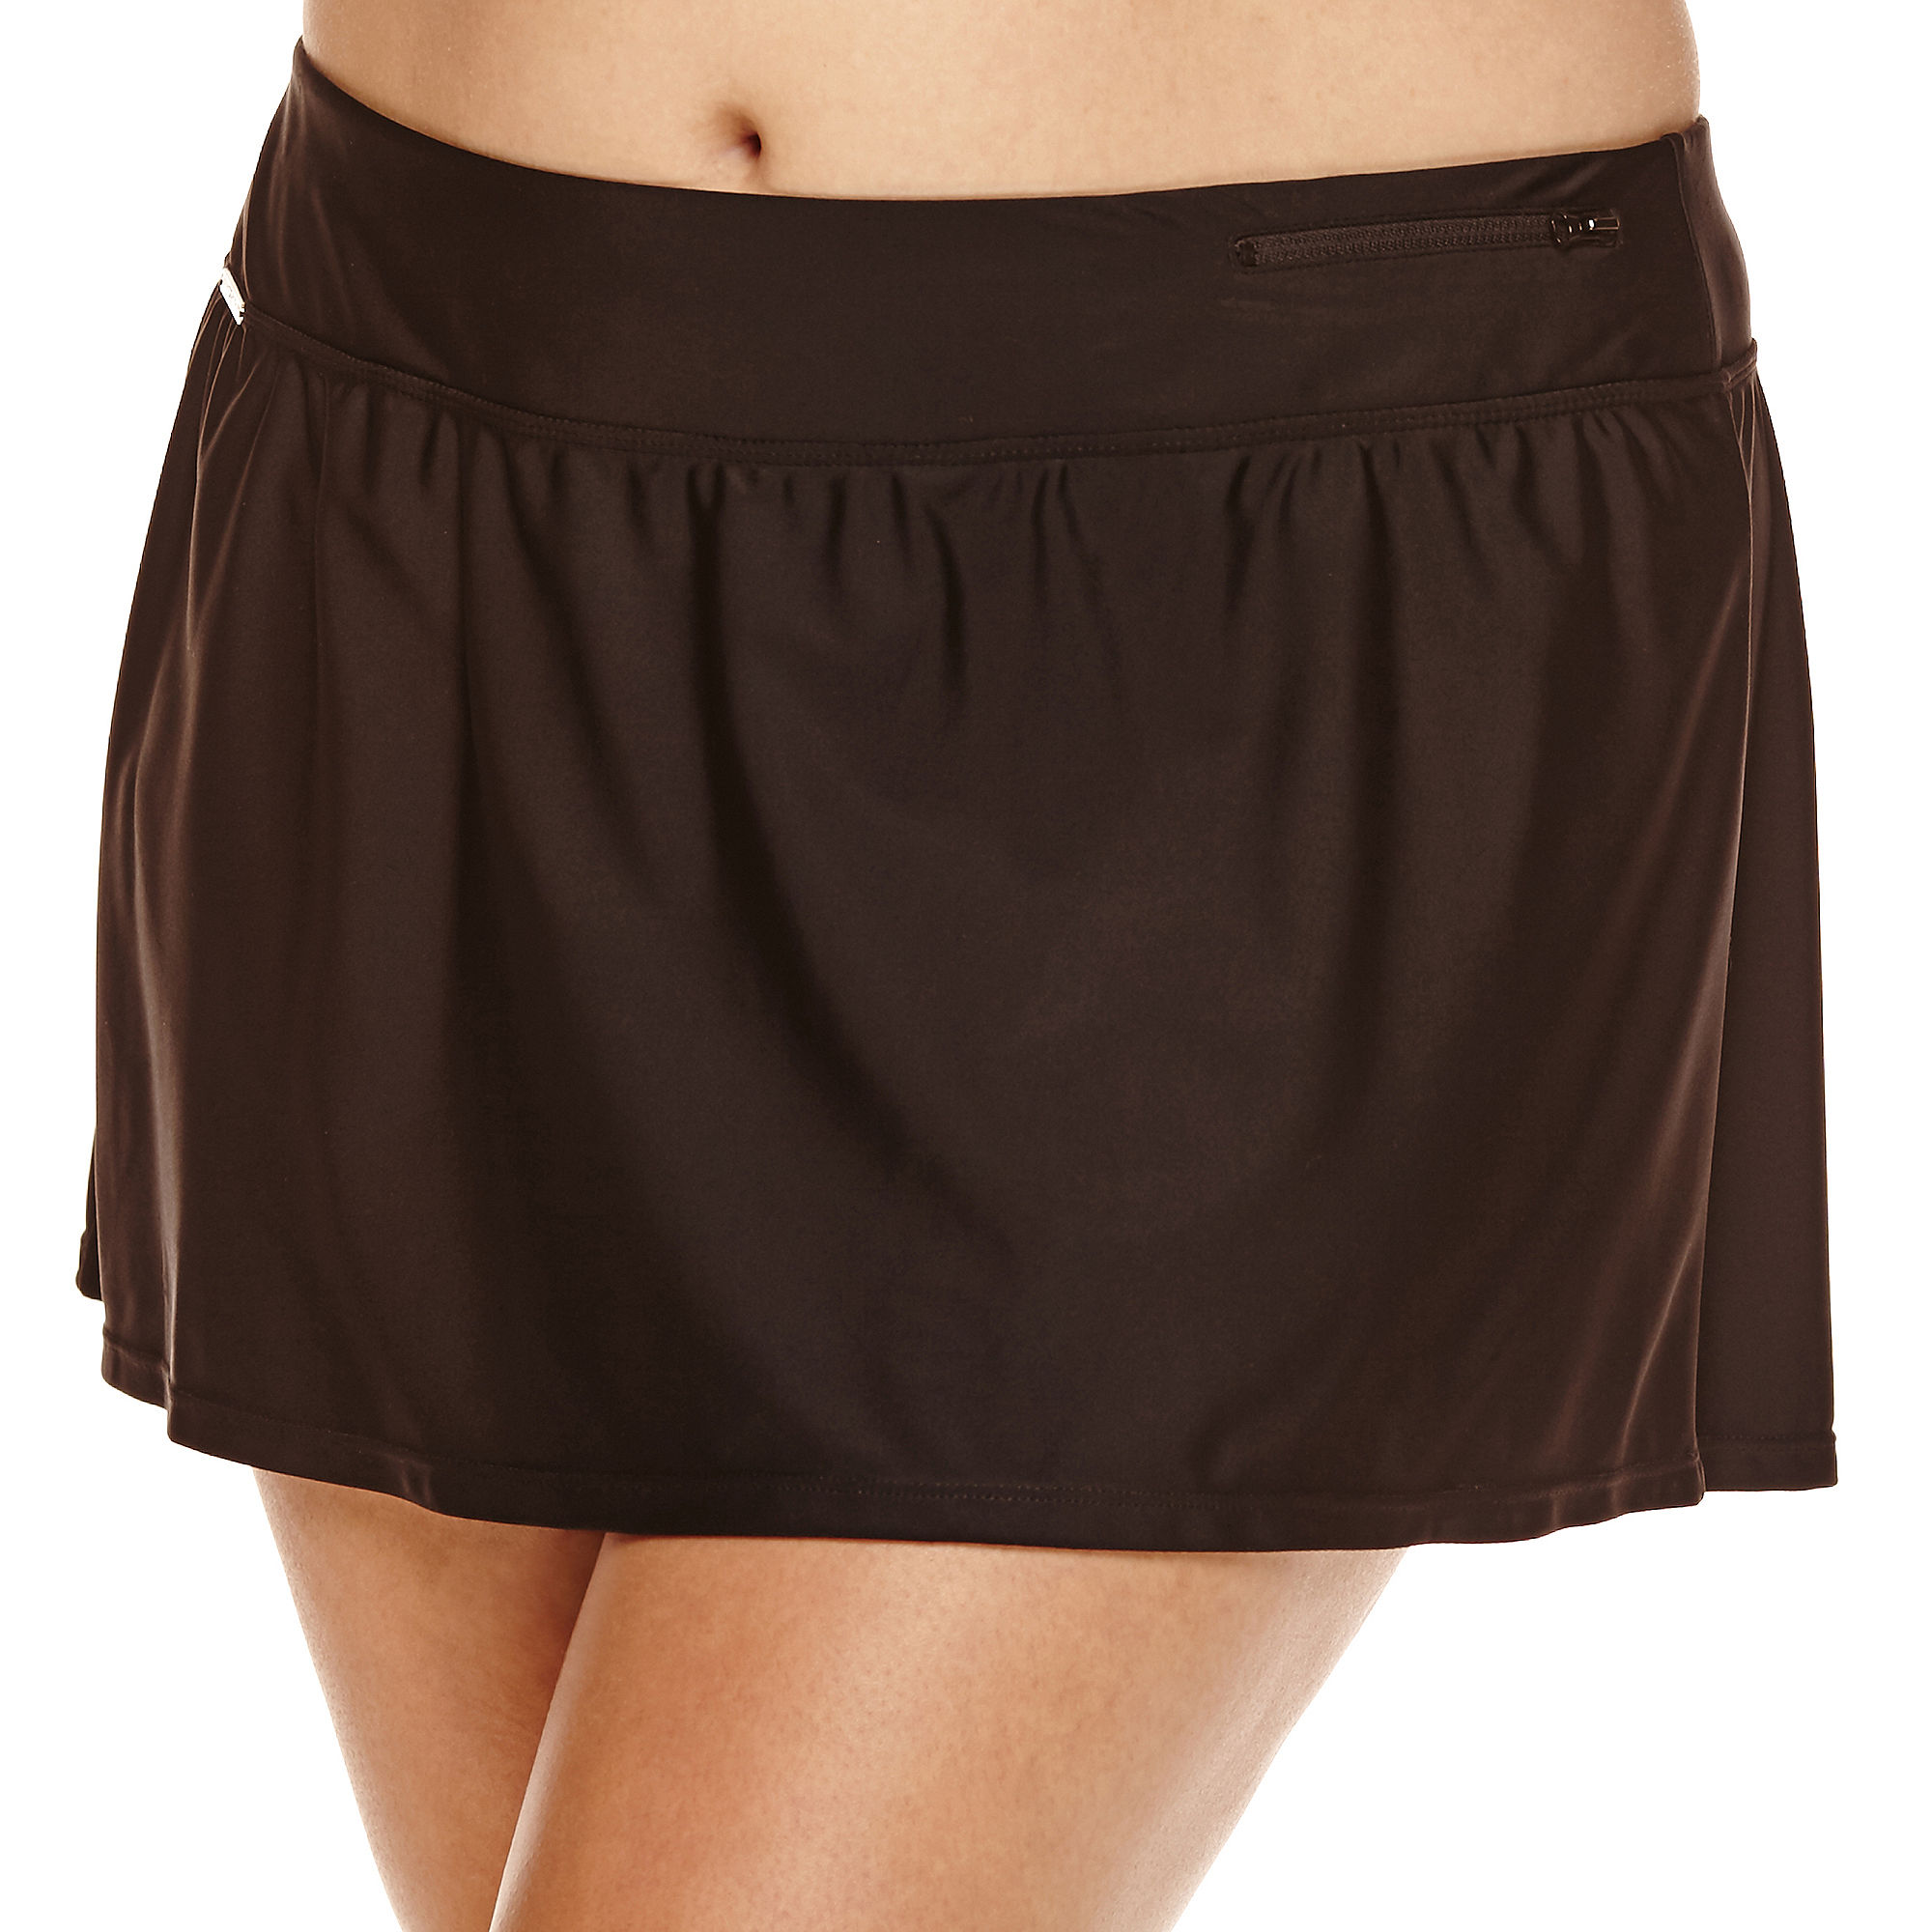 Zeroxposur Knit Action Swim Skirt Plus | Clothing